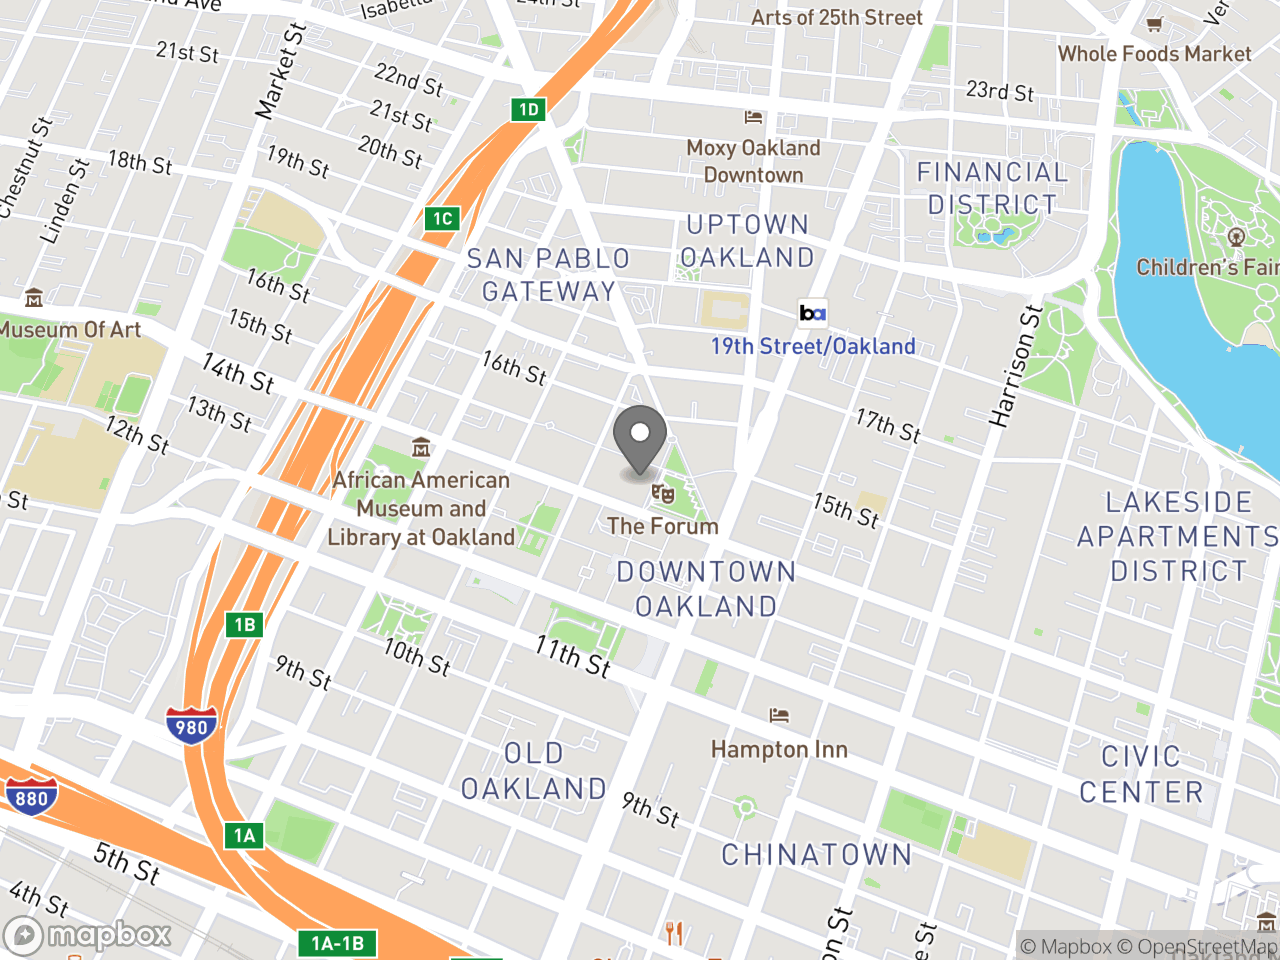 Map location for Sugar-Sweetened Beverage Community Advisory Board Meeting November 5, 2018, located at 1 Frank H Ogawa Plaza in Oakland, CA 94612